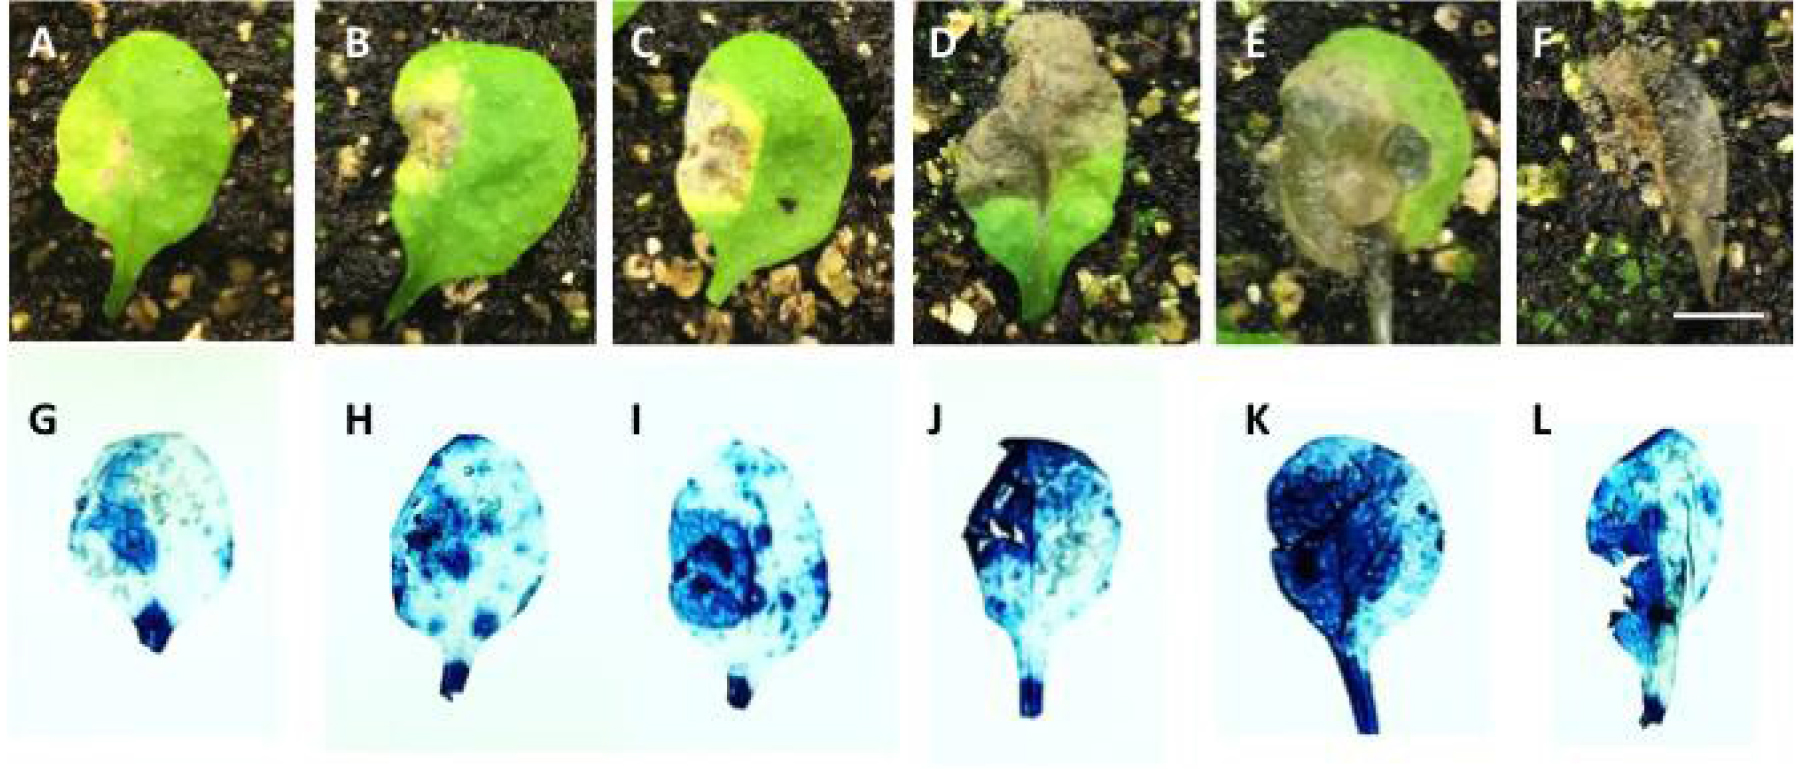 Plant Tissue Trypan Blue Staining During Phytopathogen